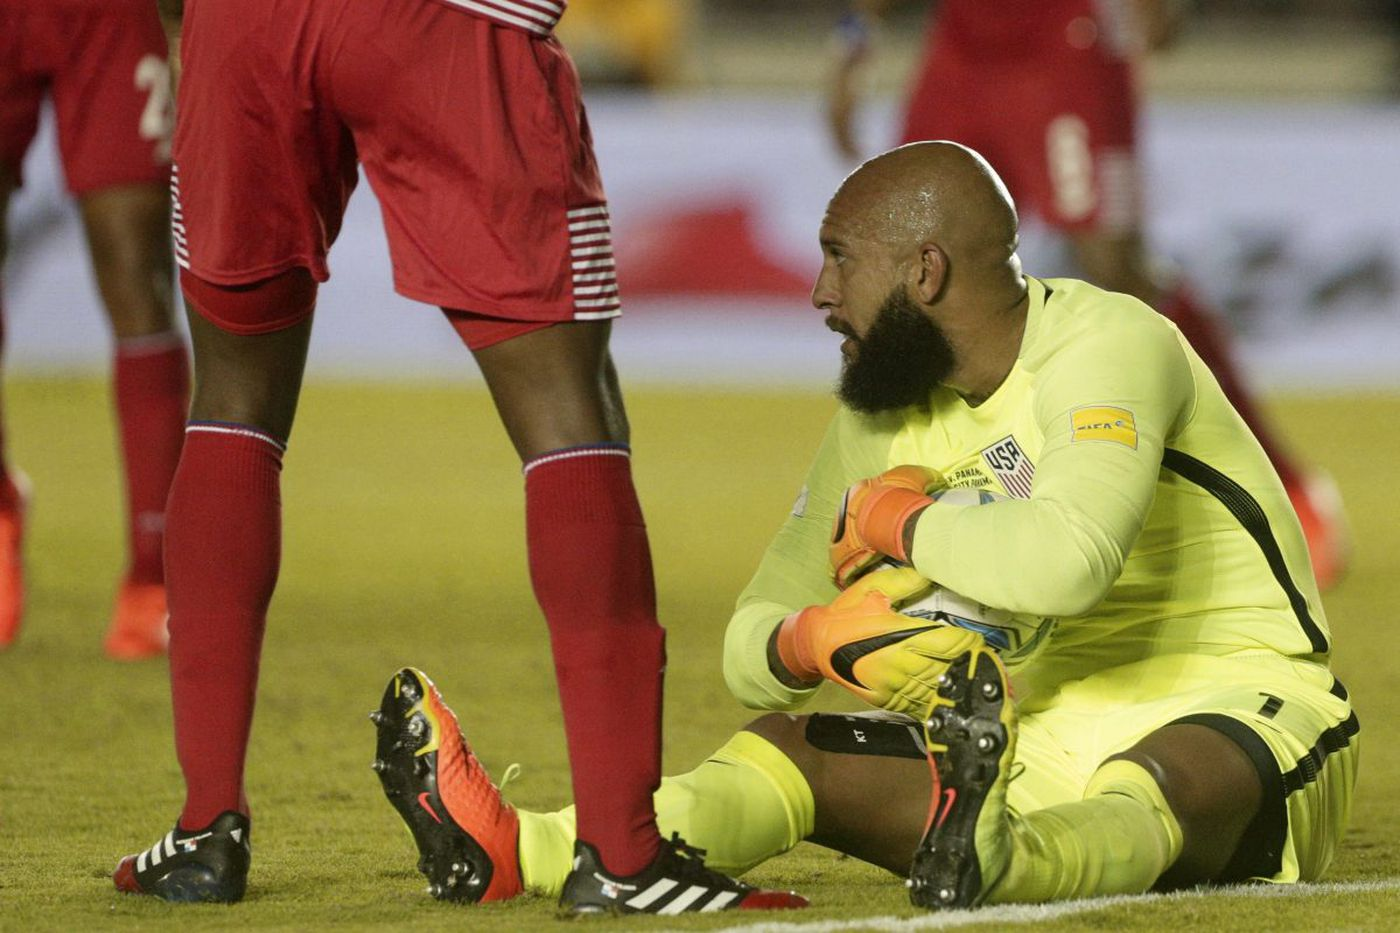 U.S. faces goalkeeper questions in key World Cup qualifiers